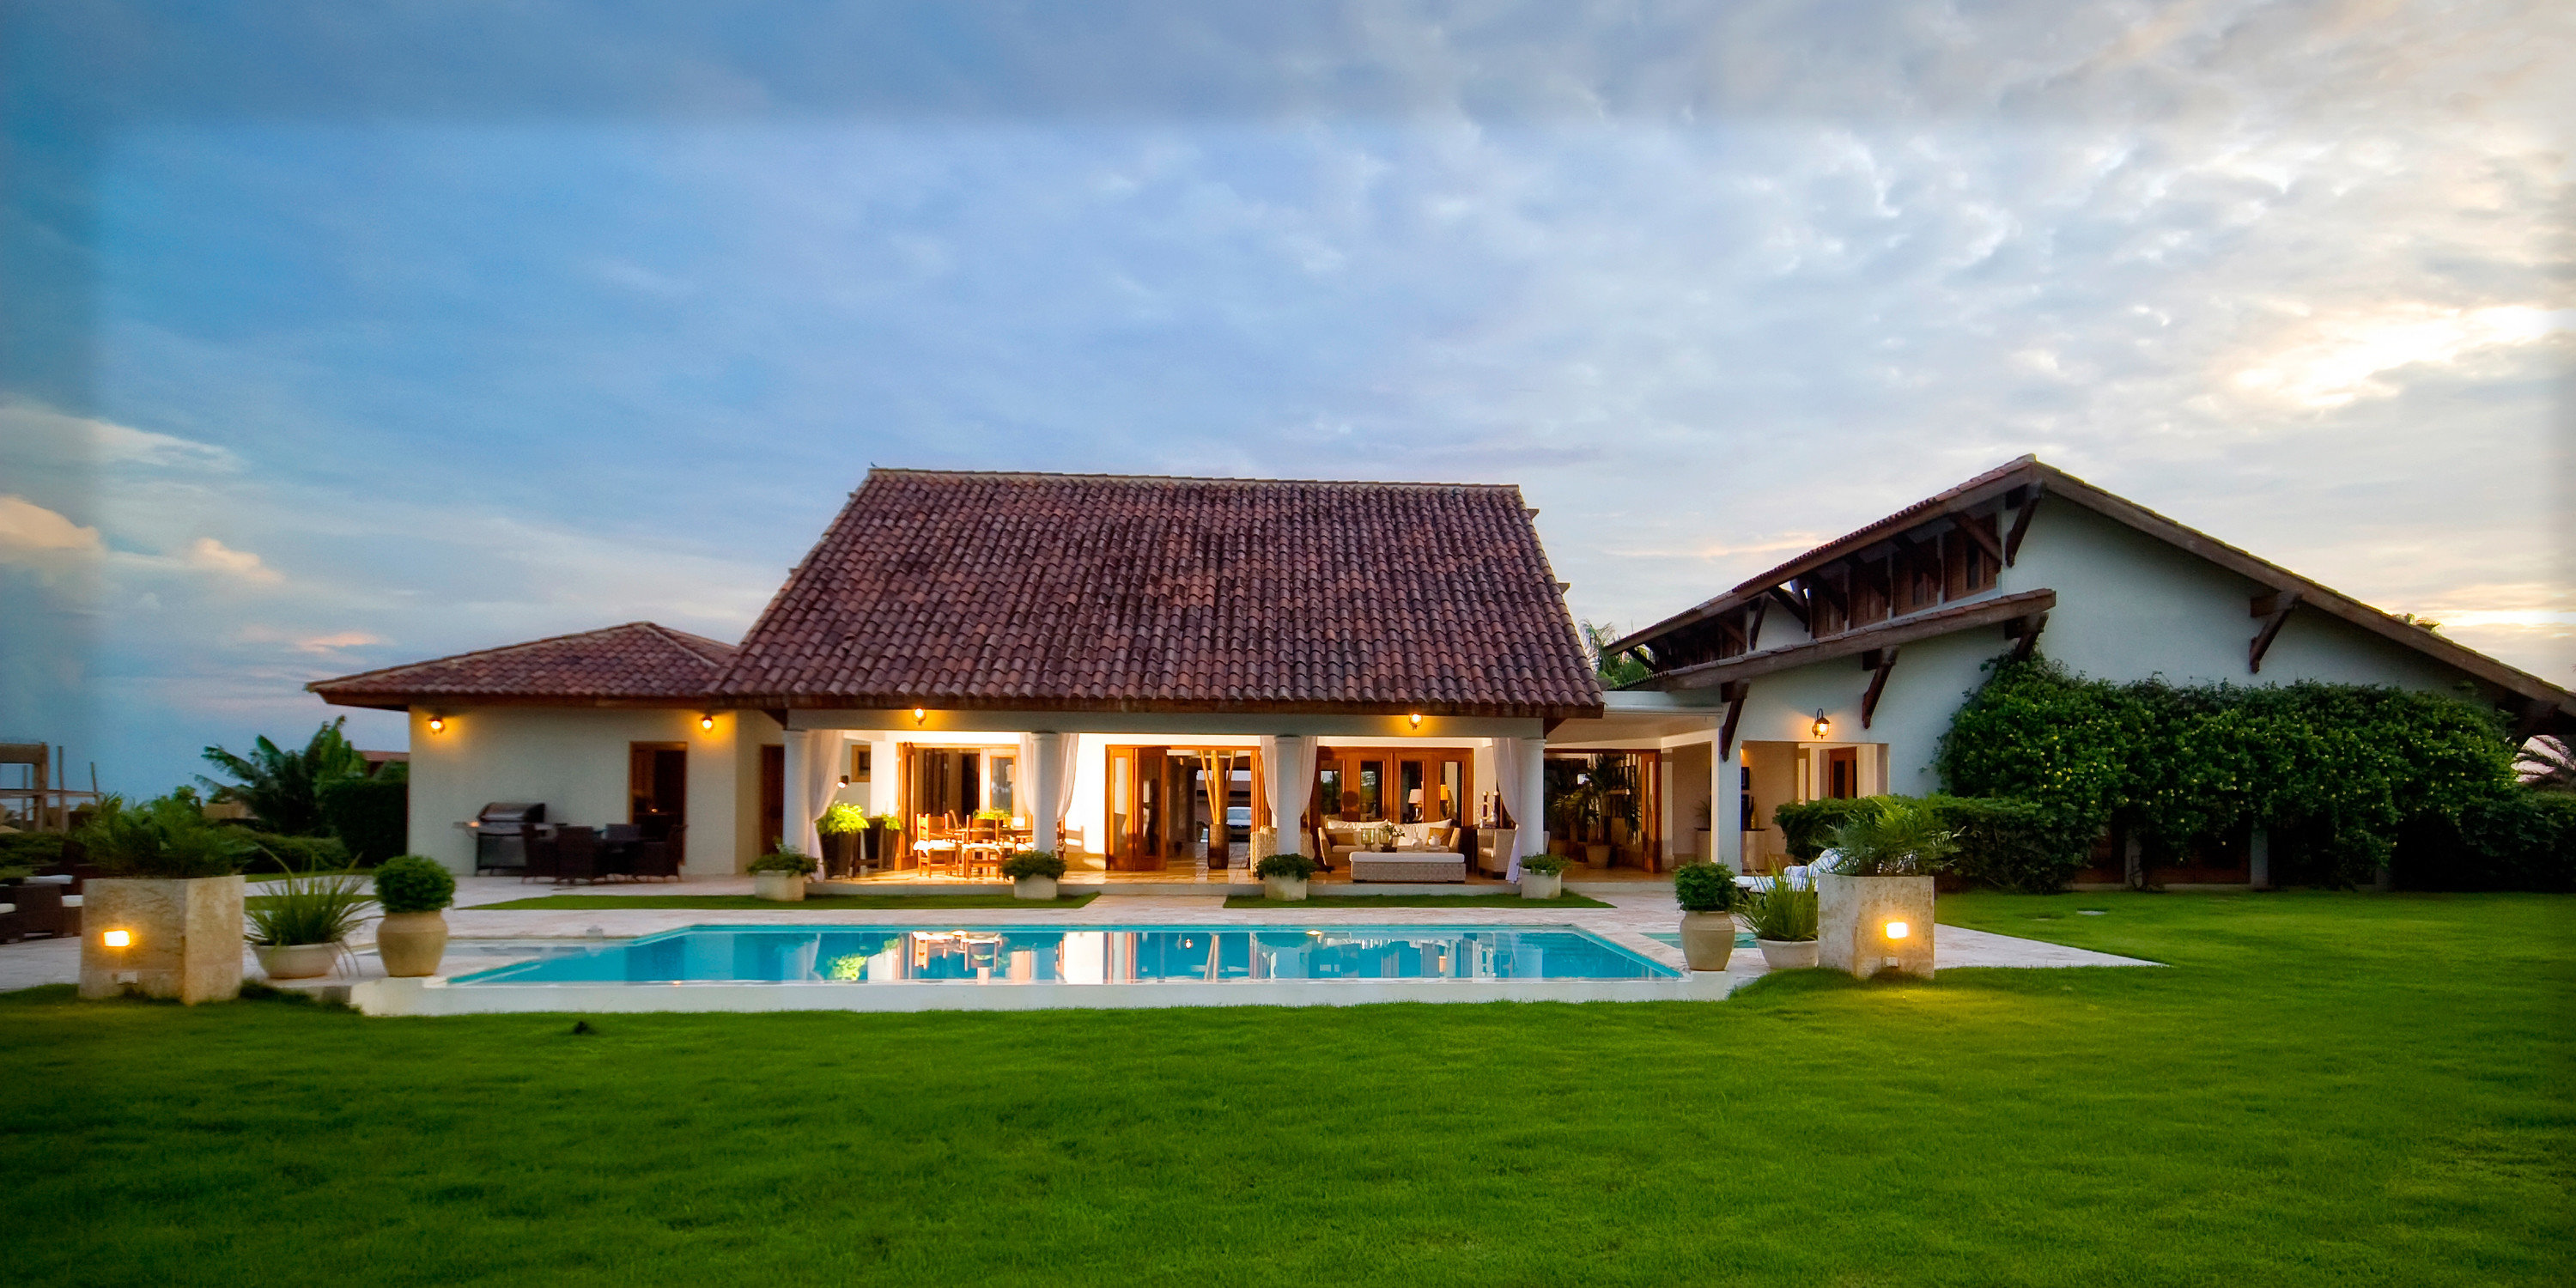 Hotels grass sky outdoor house property estate home Resort building vacation green residential area Villa real estate cottage mansion farmhouse hacienda sign